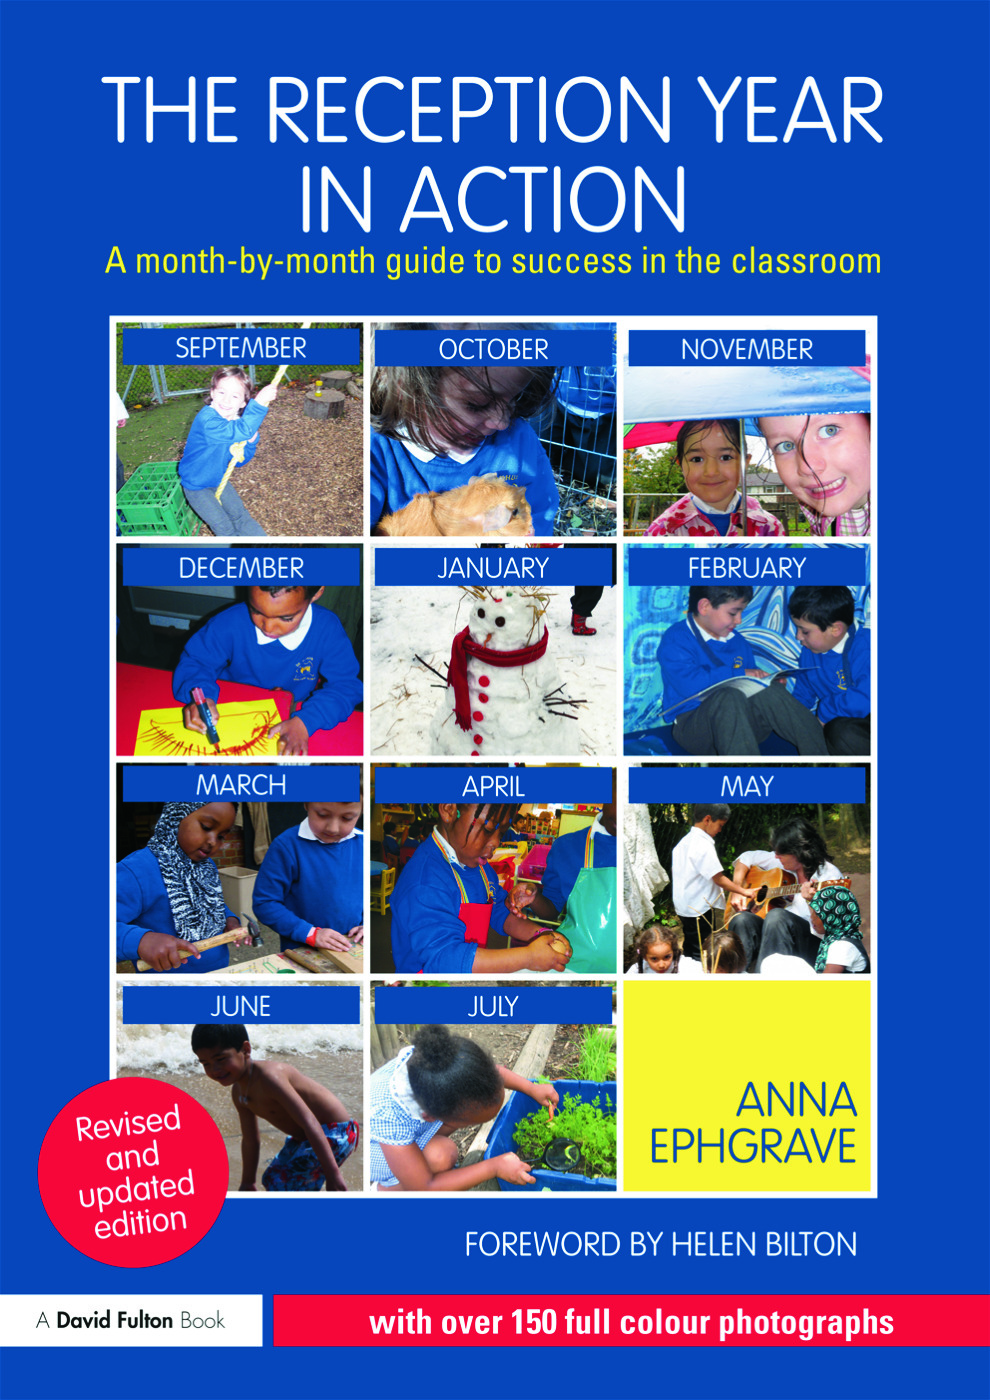 The Reception Year in Action, revised and updated edition: A month-by-month guide to success in the classroom book cover